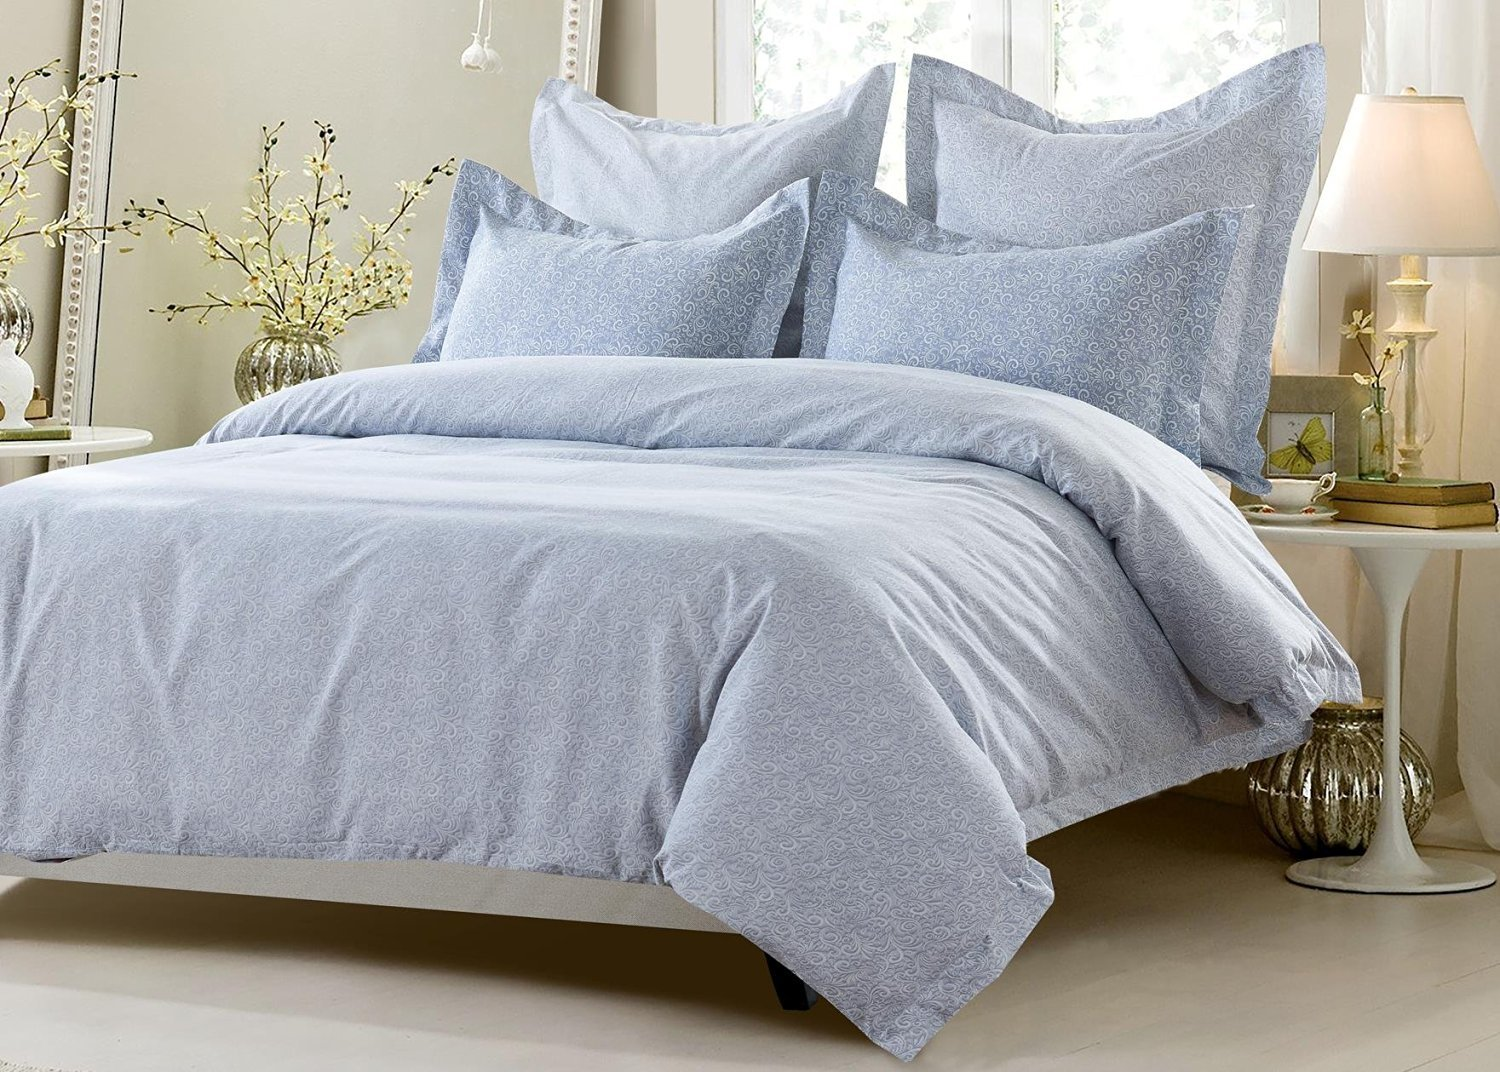 5pc Elegant Design Duvet Cover Set Style